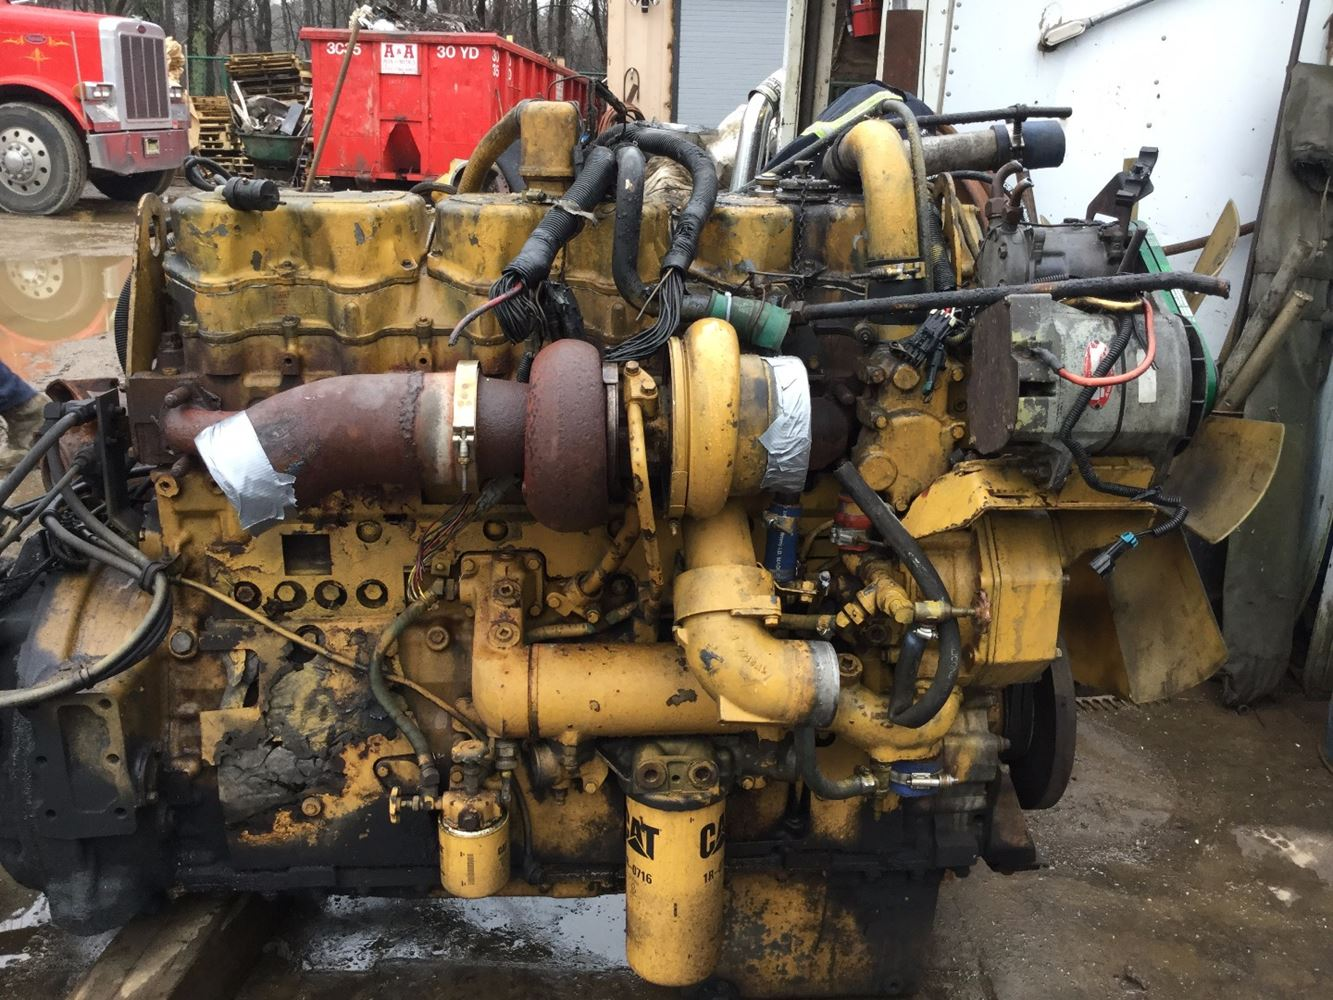 1996 Caterpillar 3406E Engine Assys TyHwPxhs8AFH_f 1996 caterpillar 3406e (stock salvage 946 t cat 1934) tpi Cat 3406E Coolant Temp Sensor at couponss.co